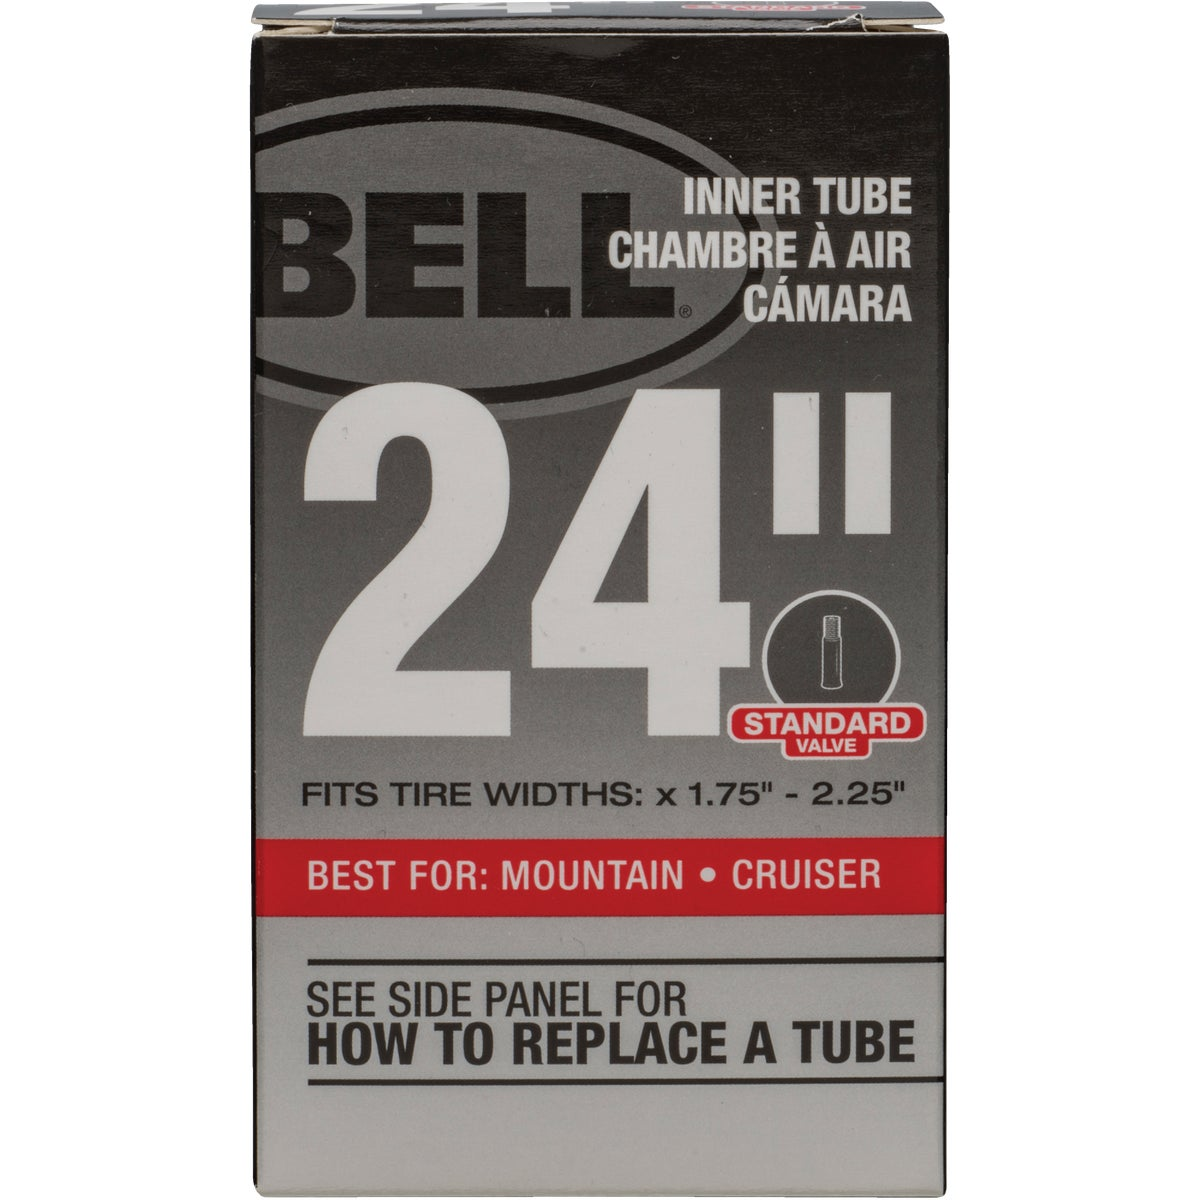 "24"" UNIVERSAL INNER TUBE - 7015358 by Bell Sports"